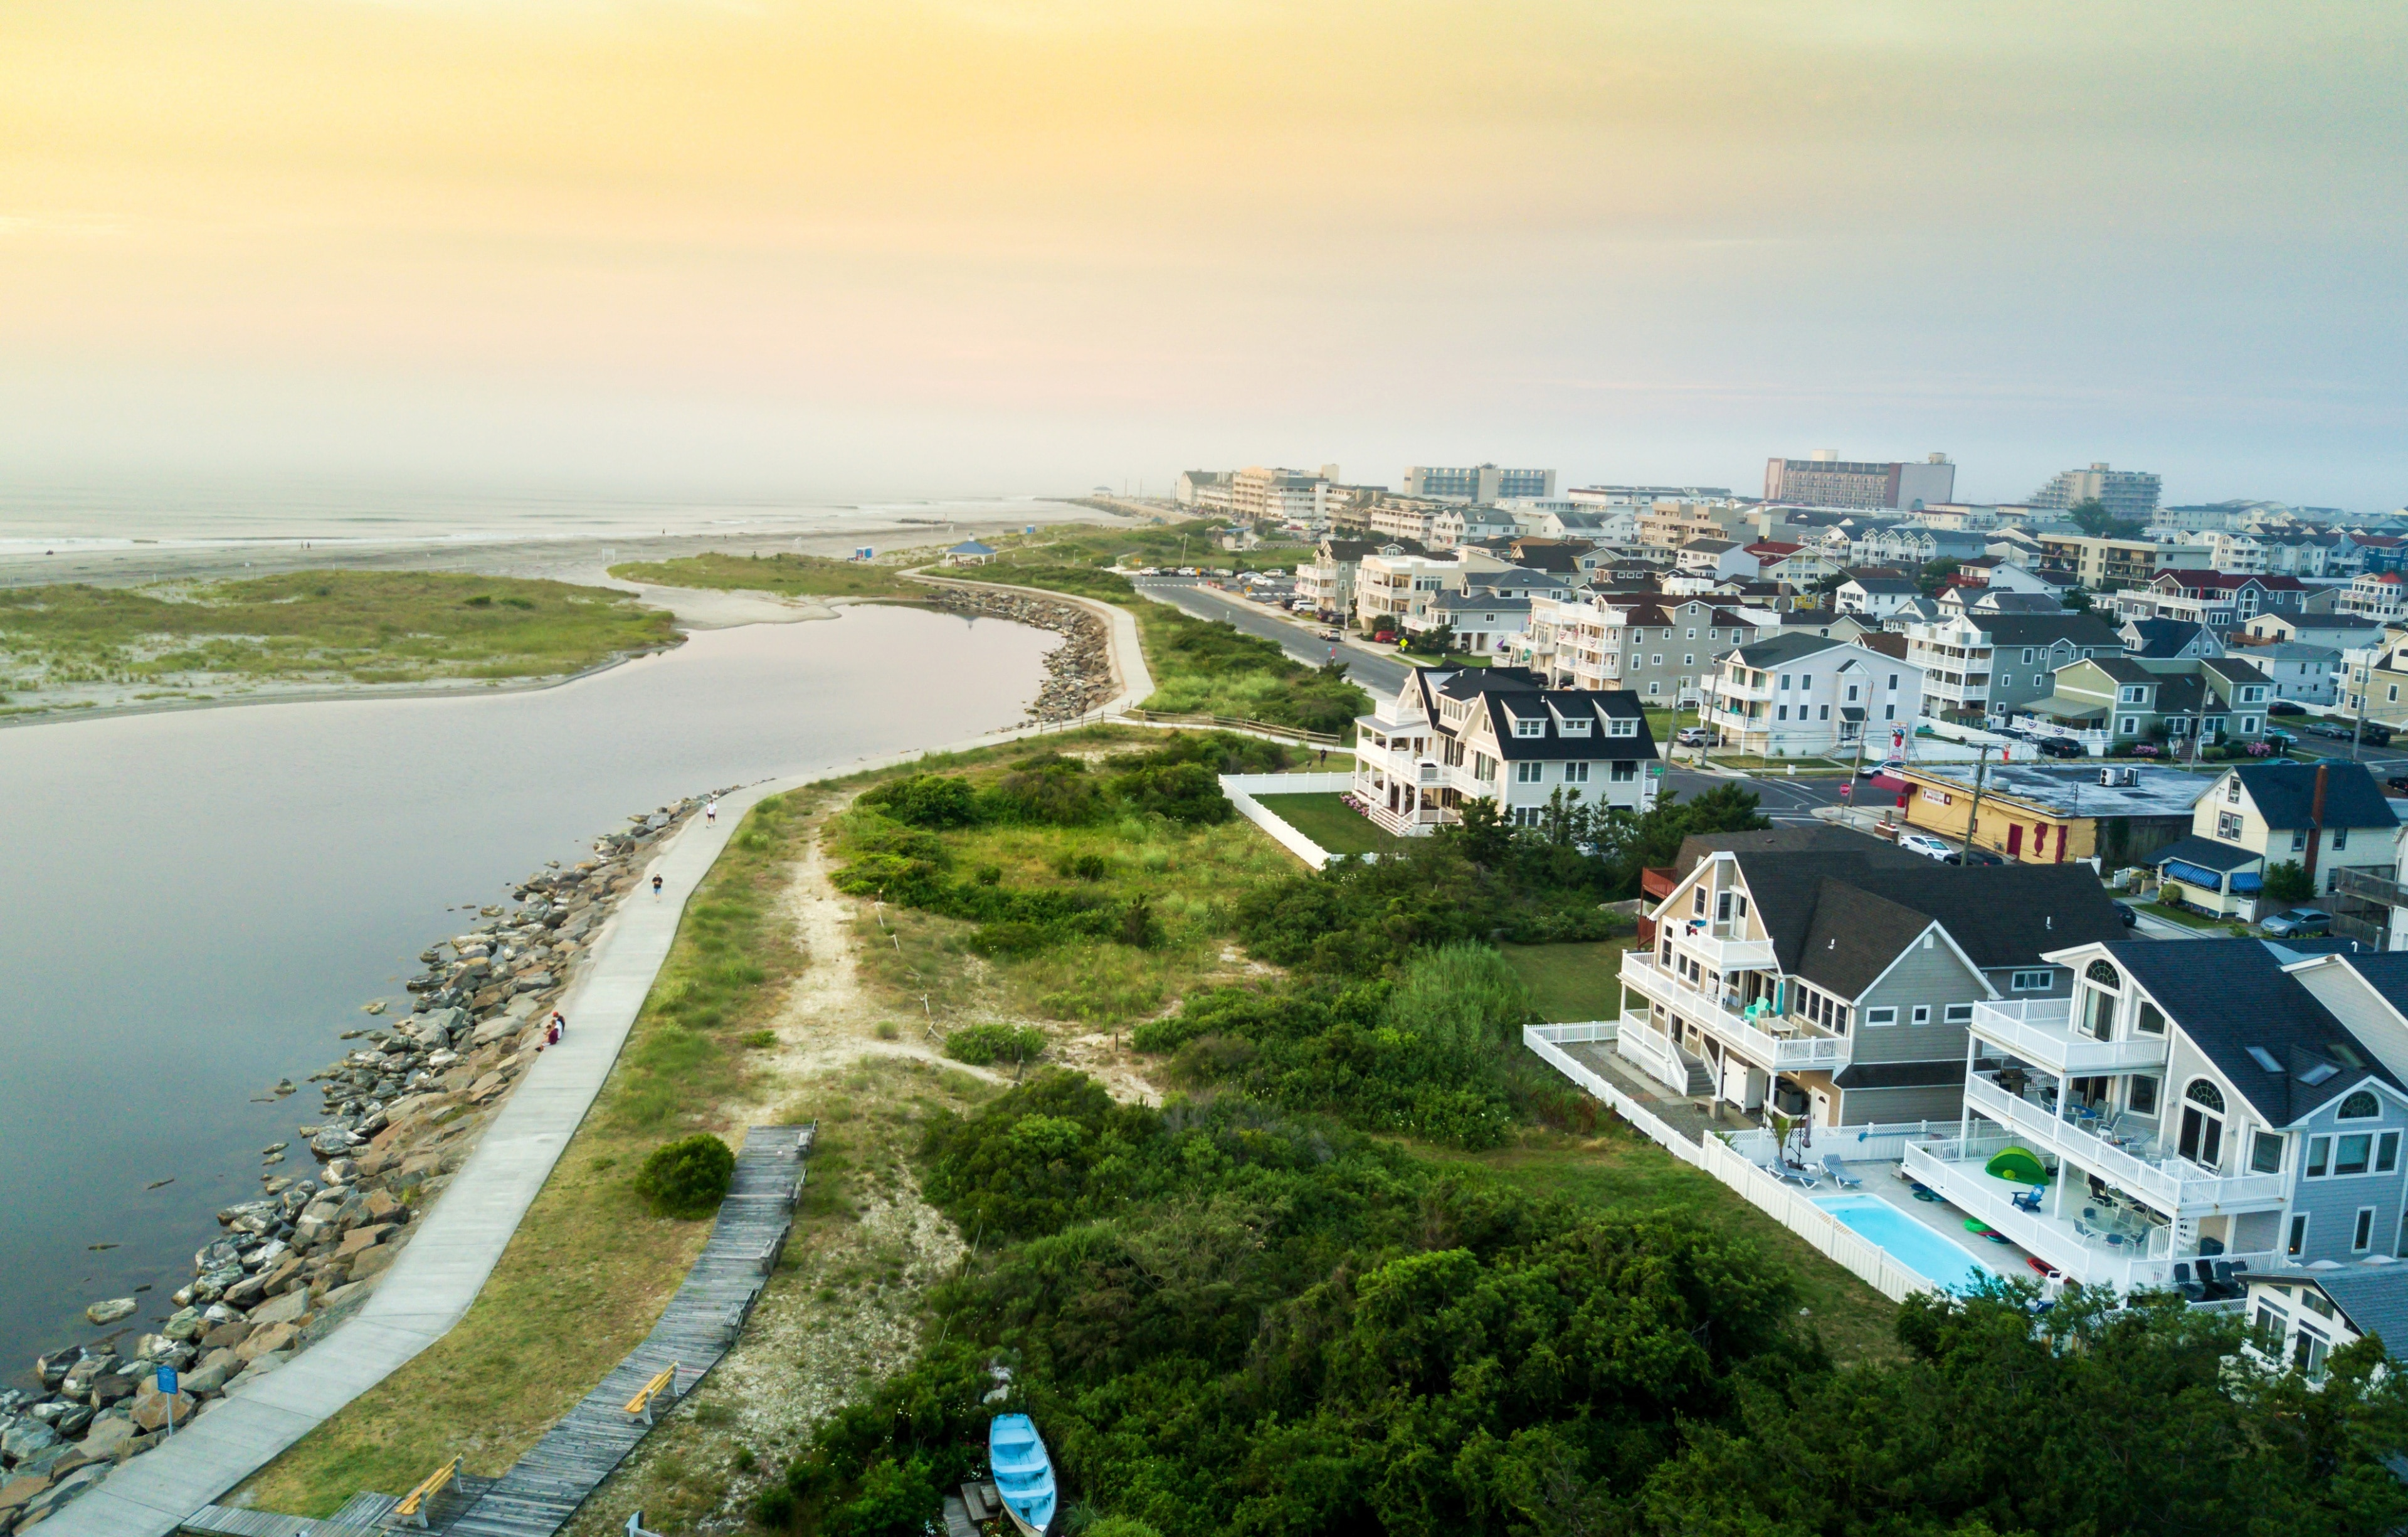 North Wildwood, New Jersey, United States of America